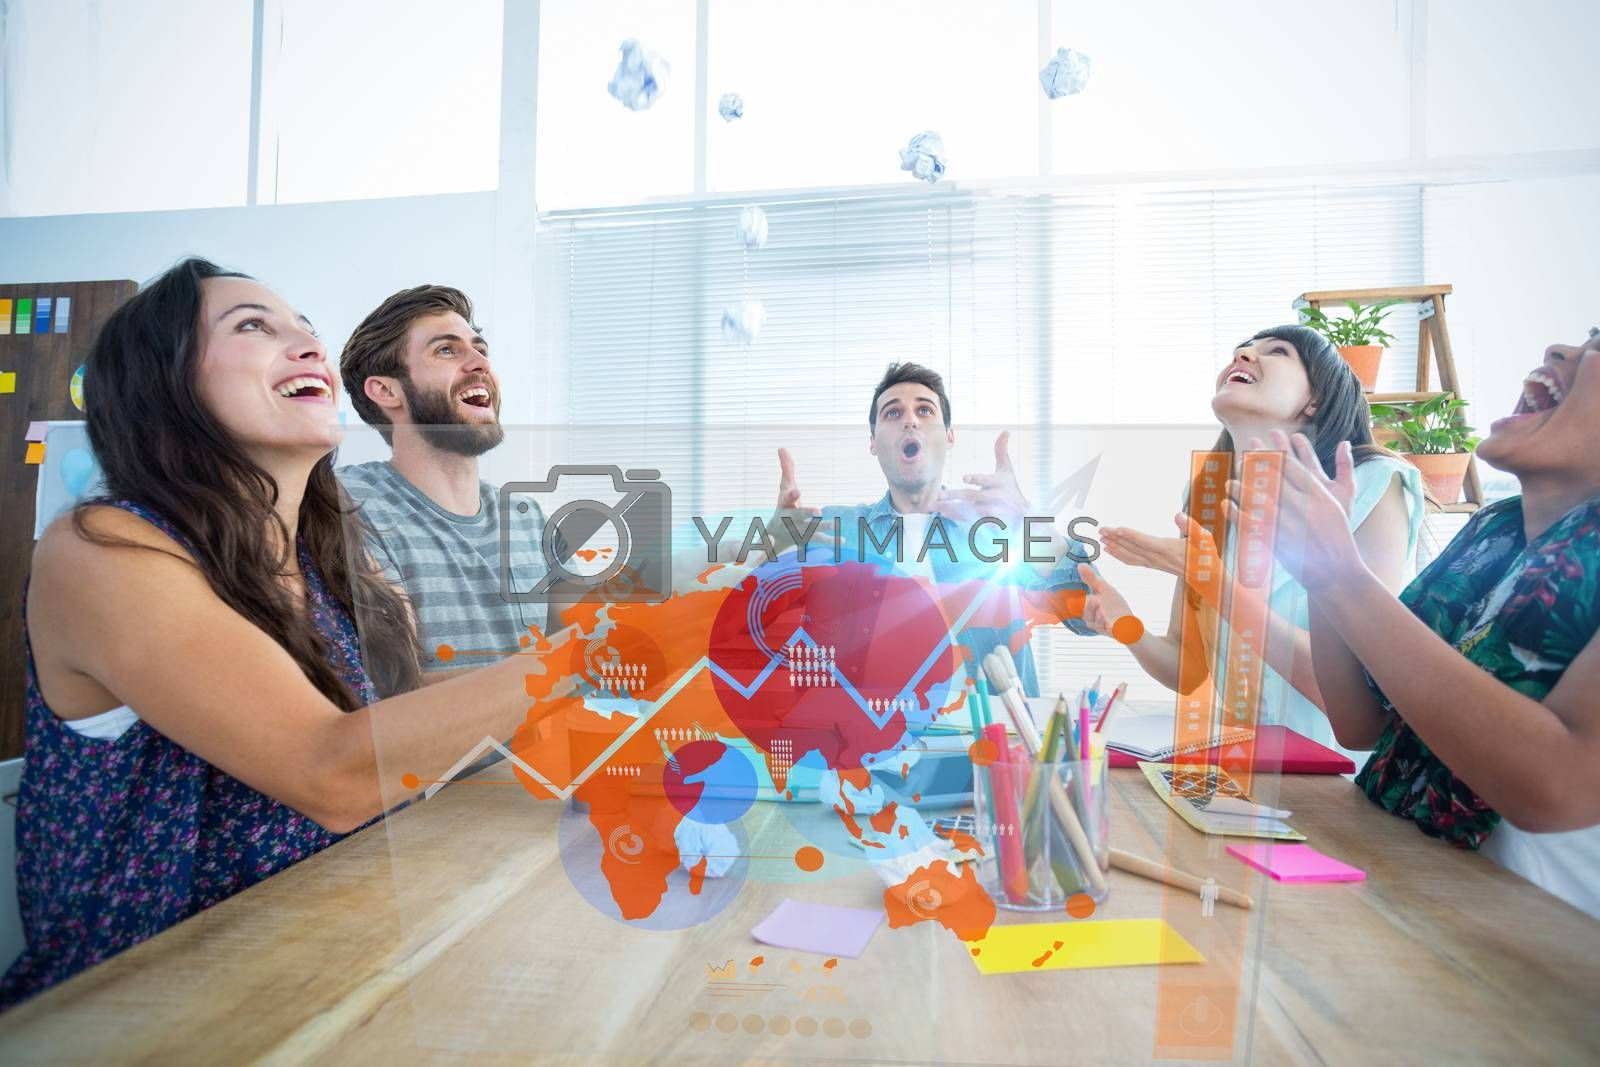 Futuristic interface with the world map  against creative business people throwing paper in the air